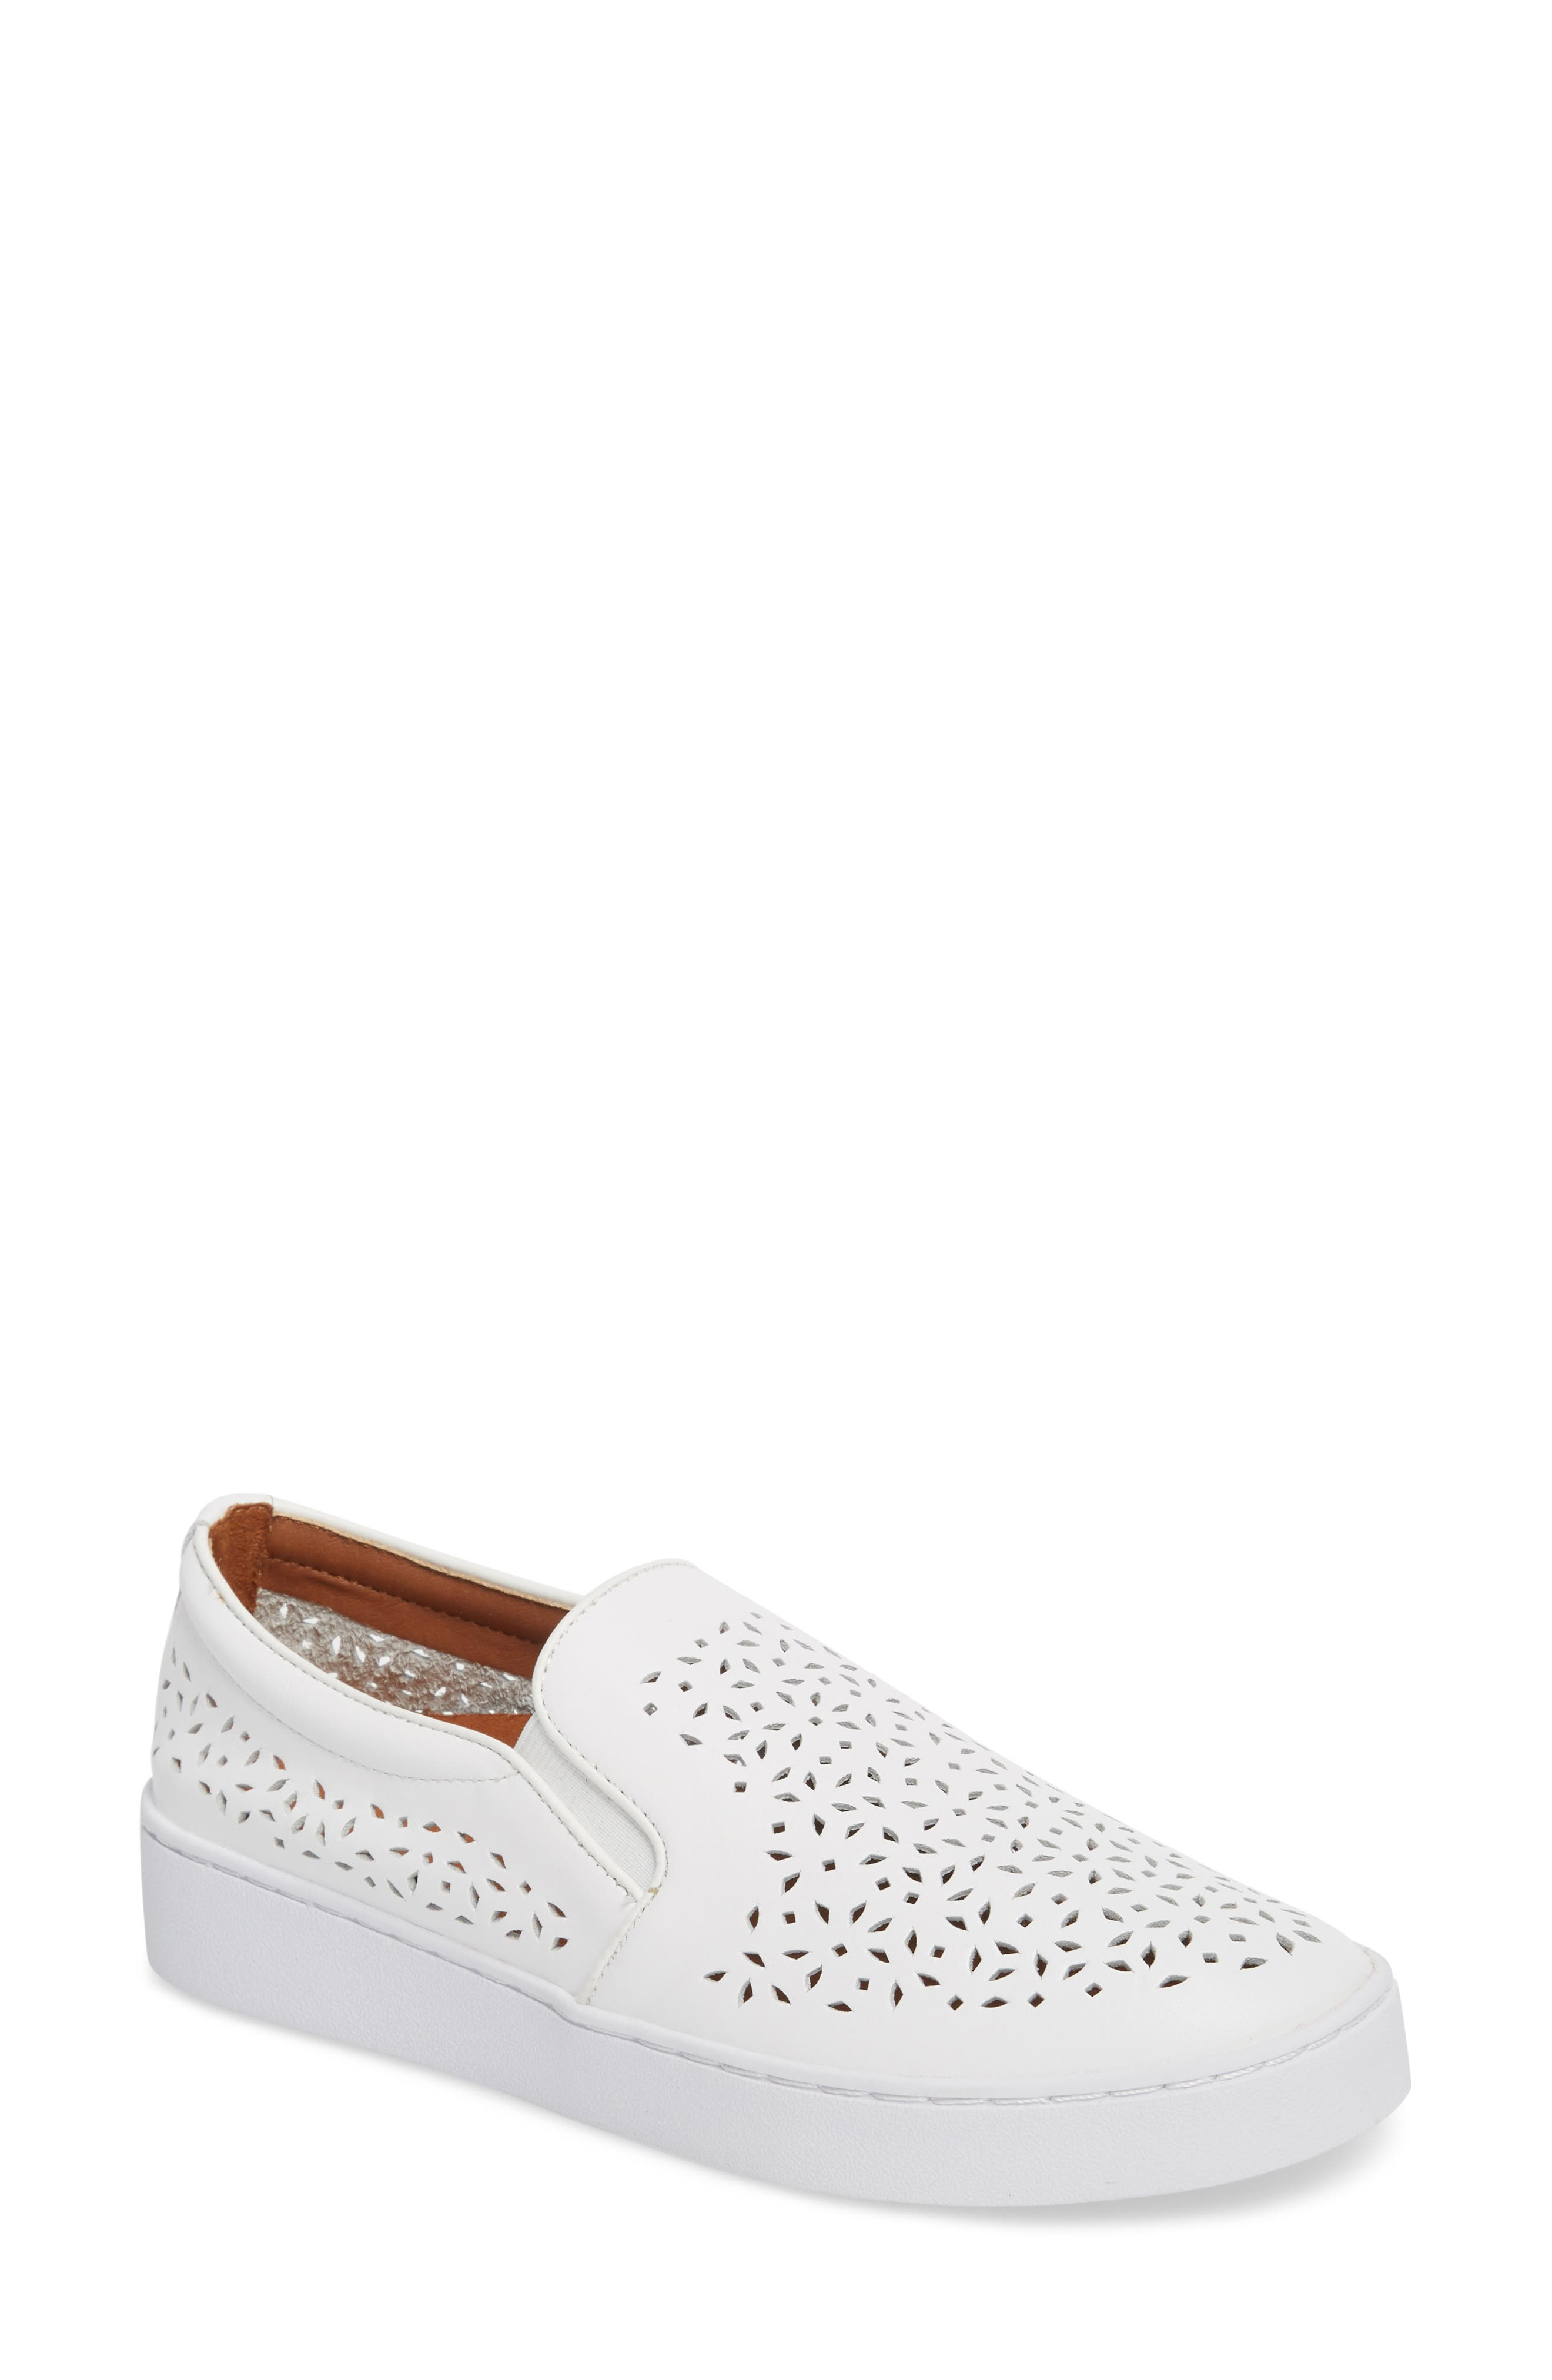 Perforated Slip-On Sneaker,                             Main thumbnail 1, color,                             101